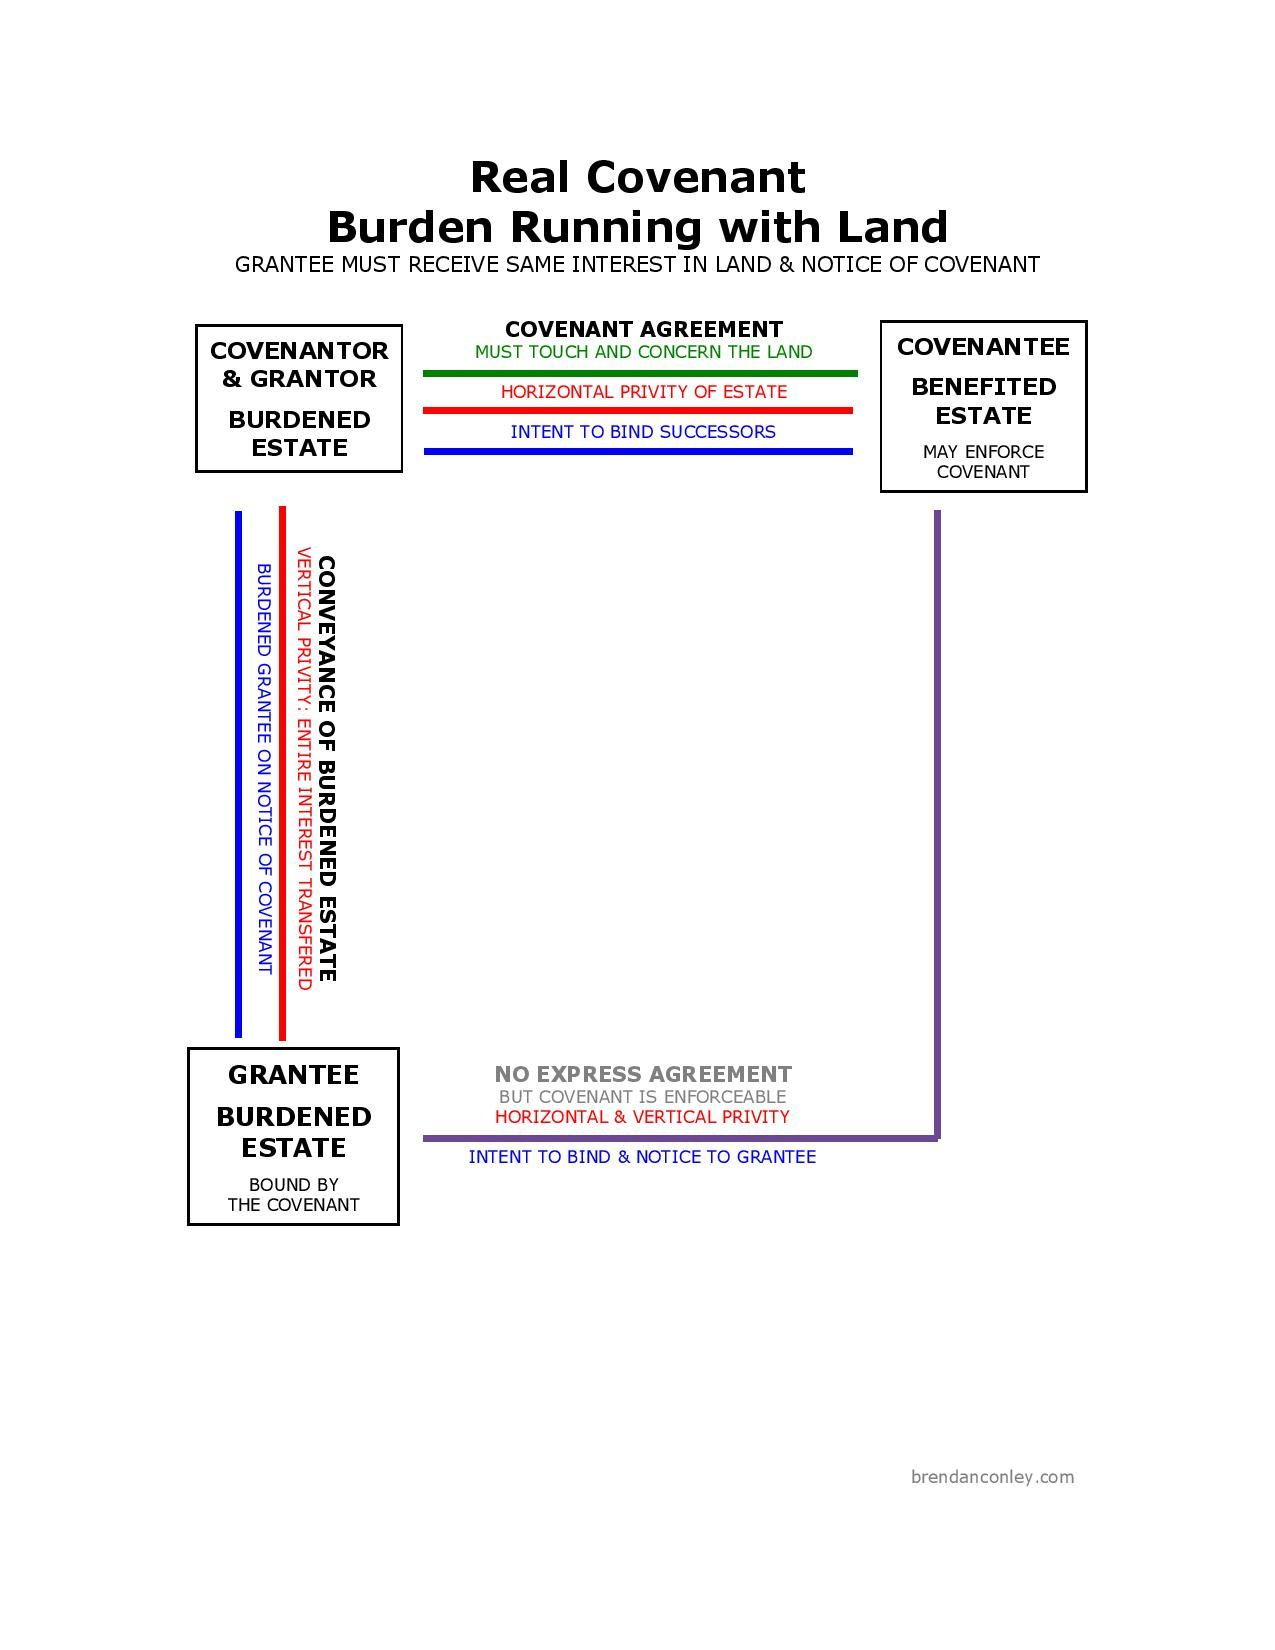 Real Covenant Burden Running with Land Exam study, Bar